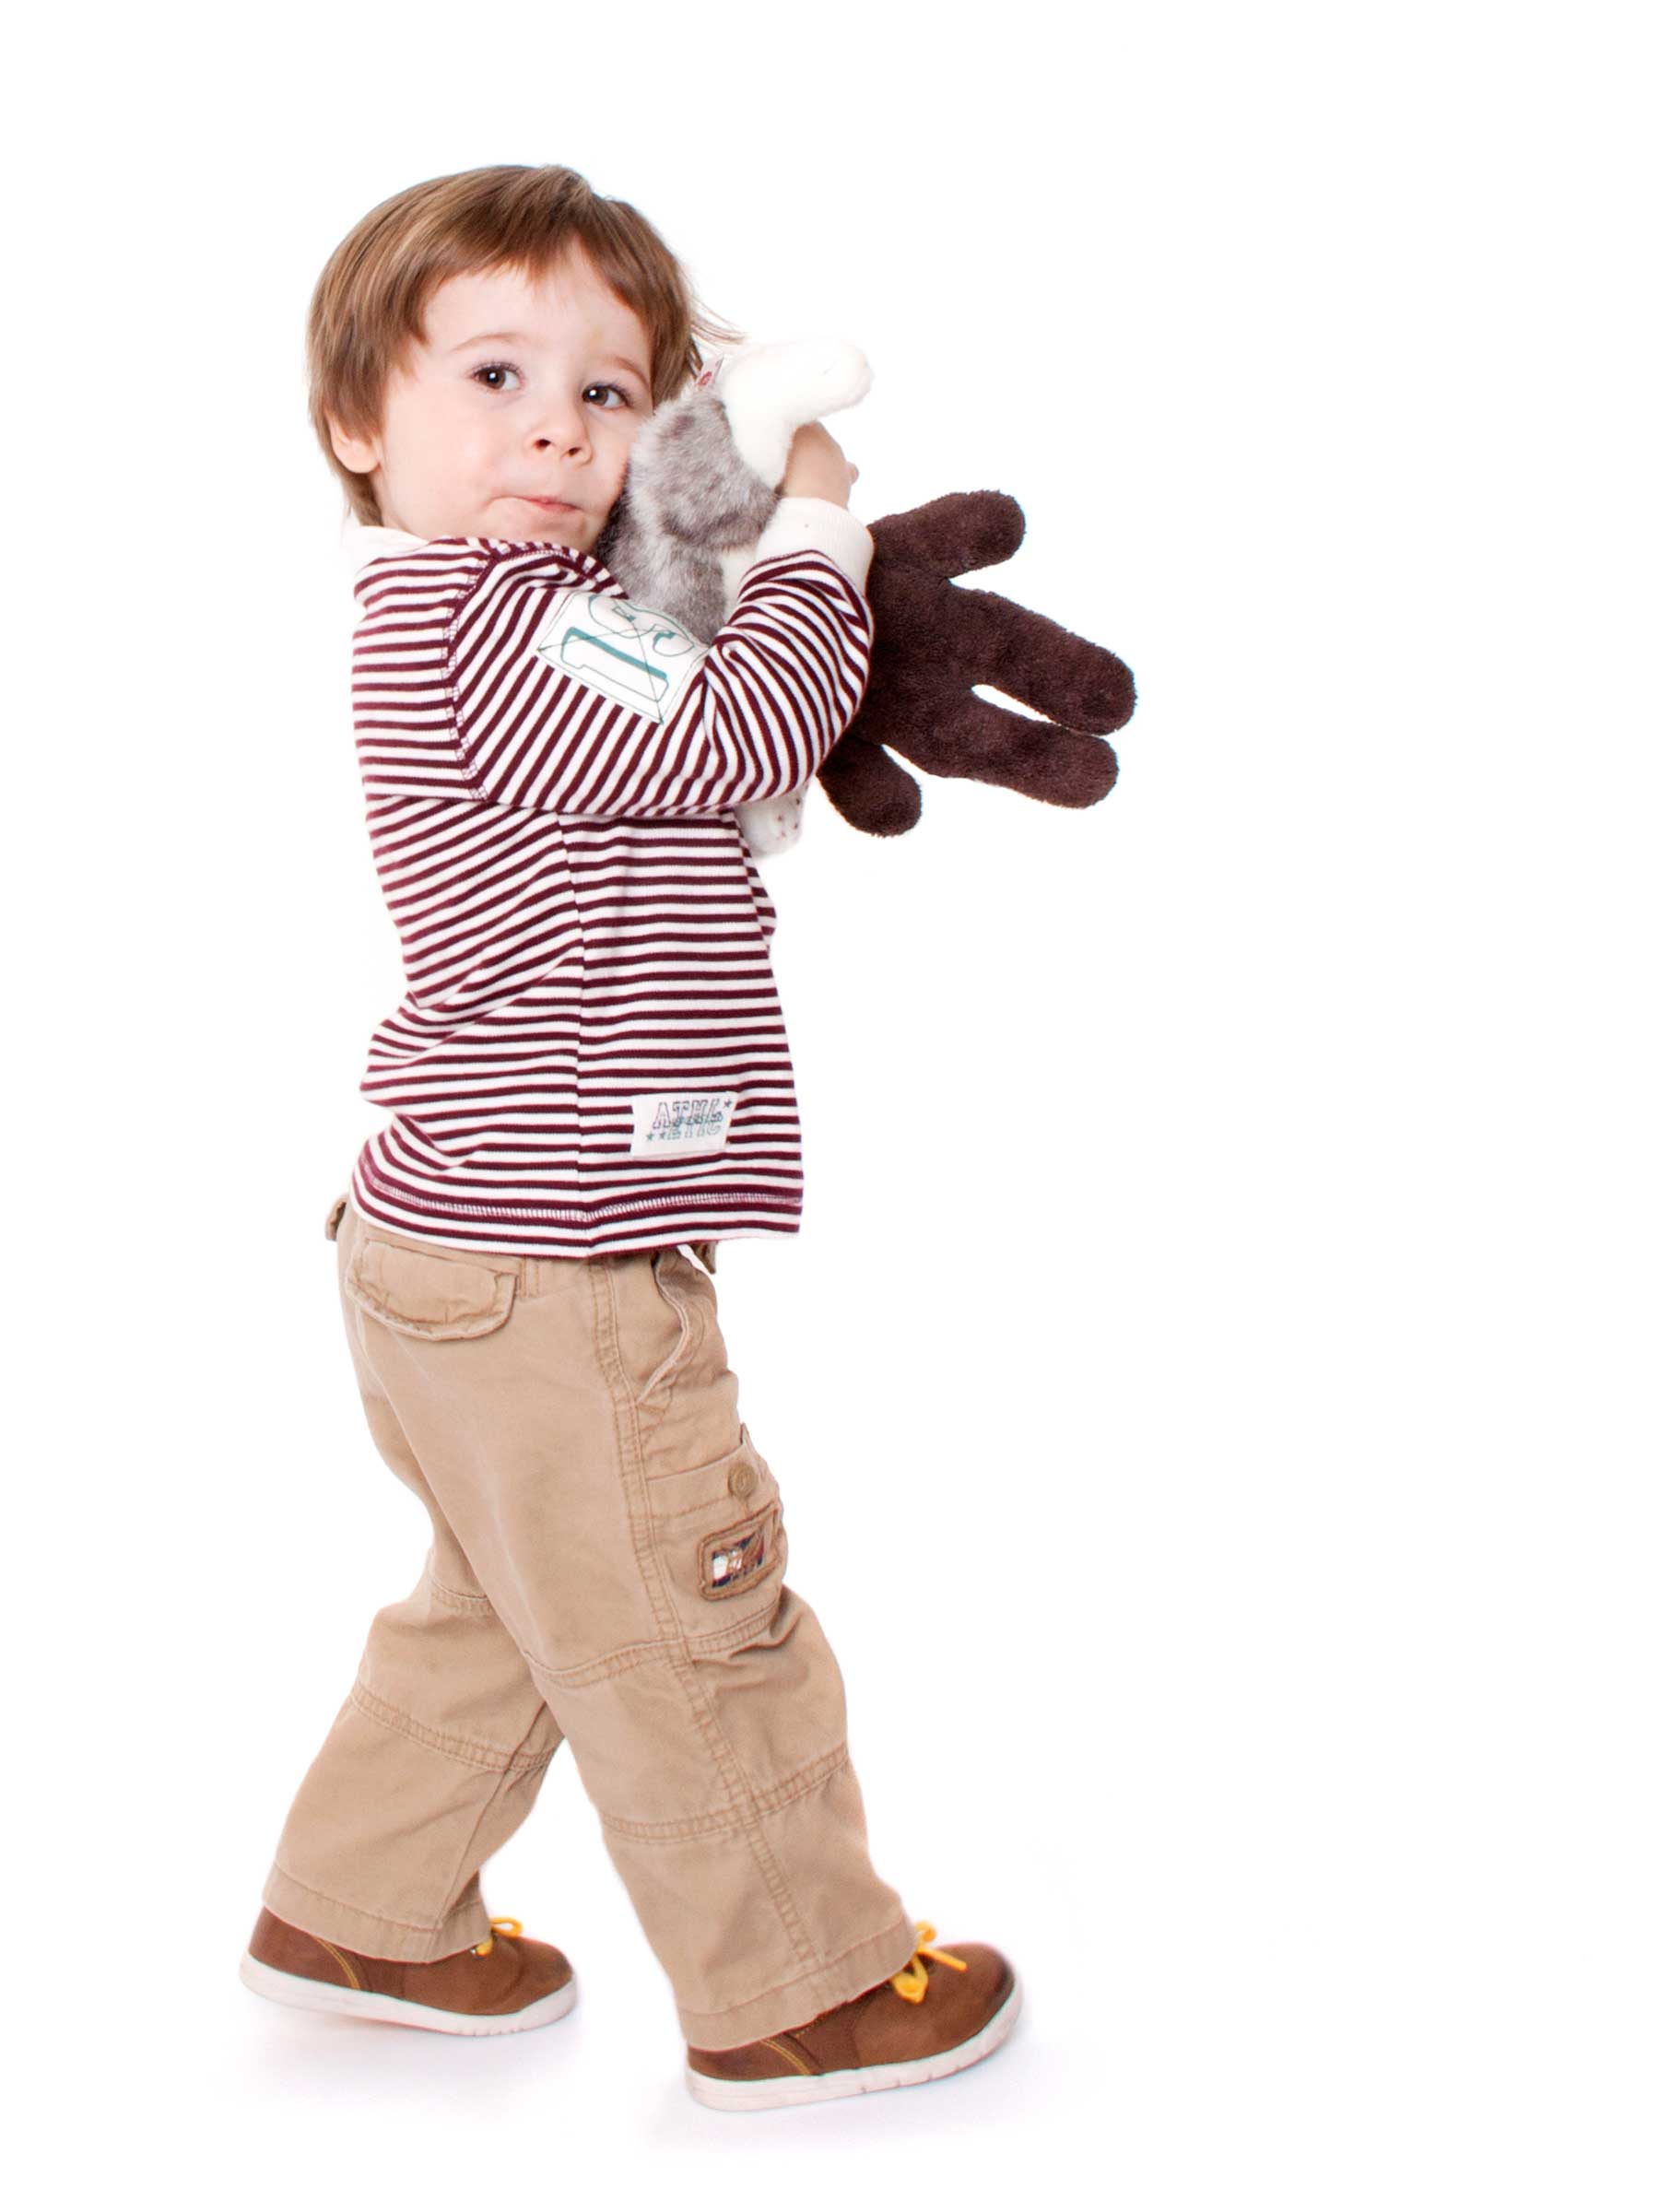 21-Home-Shoot-Toddler-Teddy-Philip-Murray-Photography-Dublin